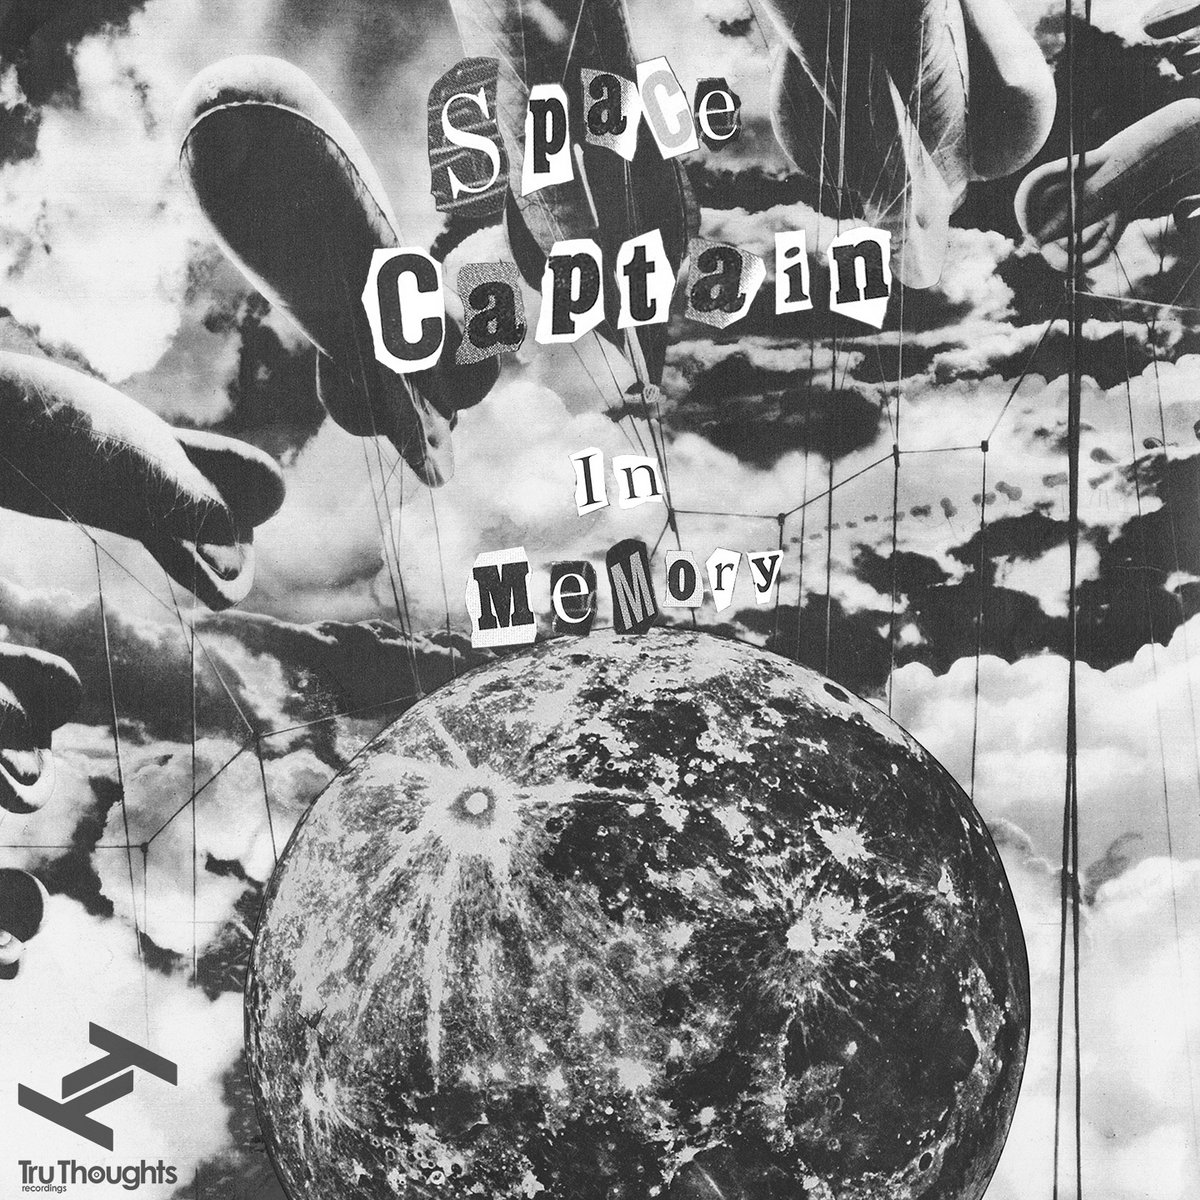 Sycamore Space Captain